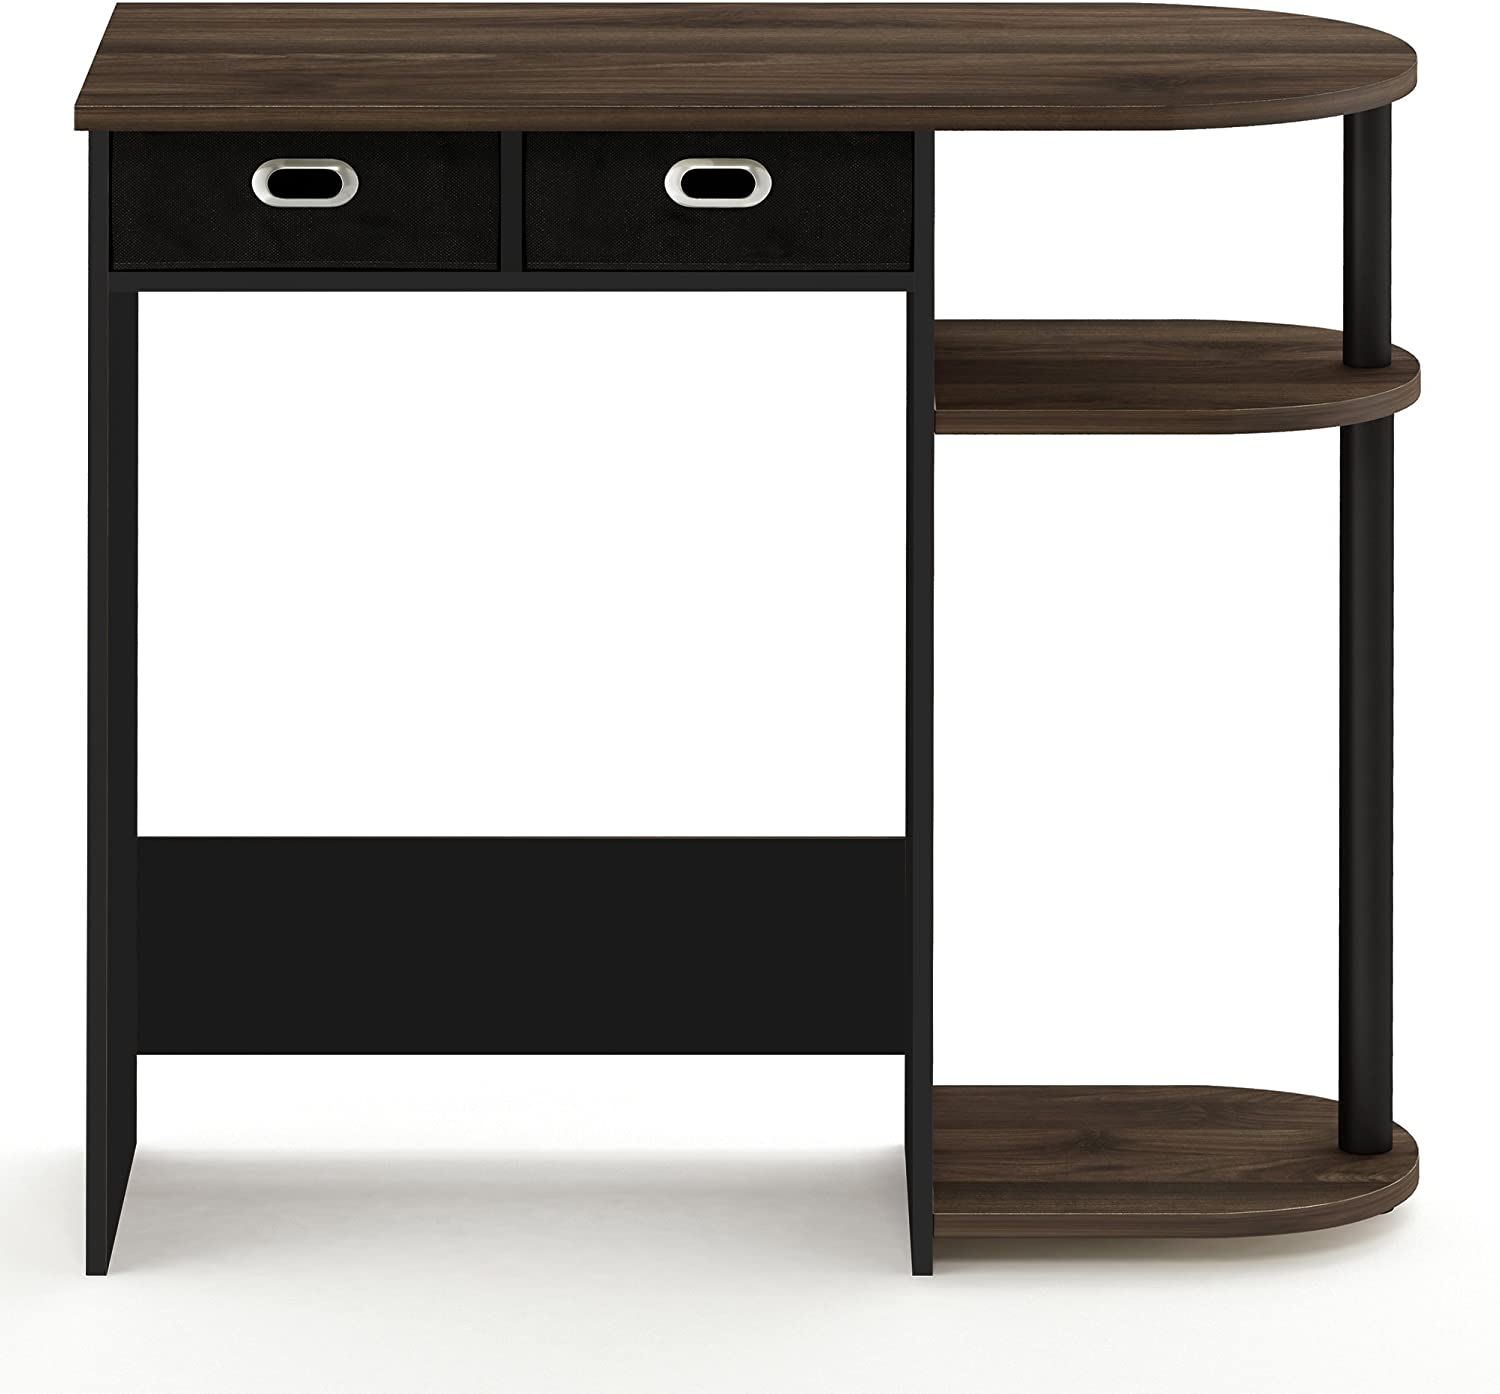 FURINNO 11193CWN/BK/DBR Go Green Home Computer Desk with Shelves, With With 2 Bin Drawers, Columbia Walnut/Black/Dark Brown